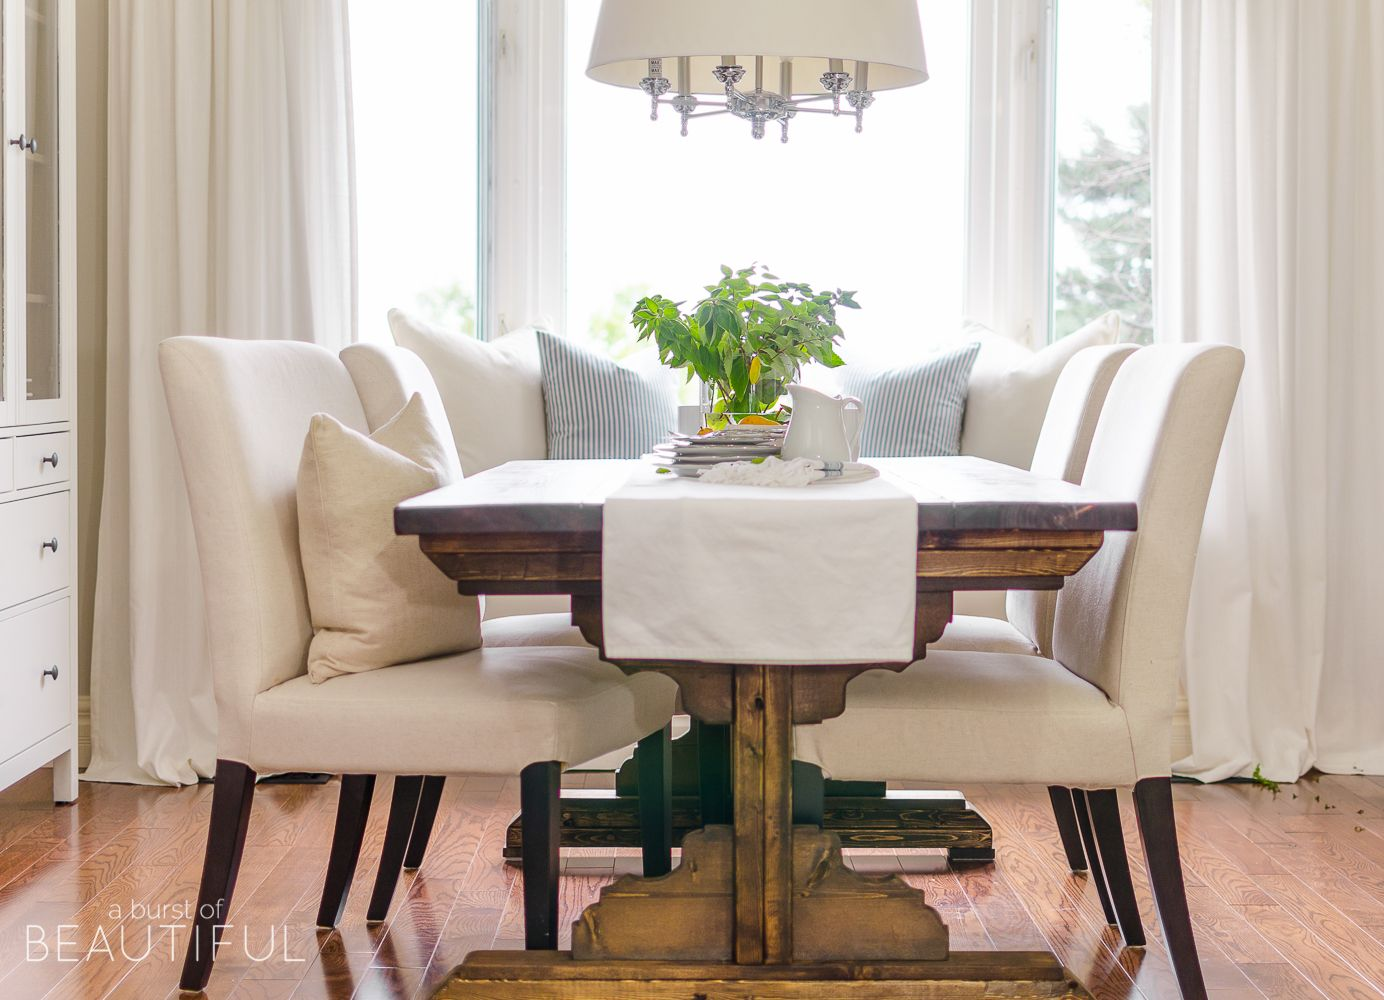 Build a beautiful farmhouse dining room table with these